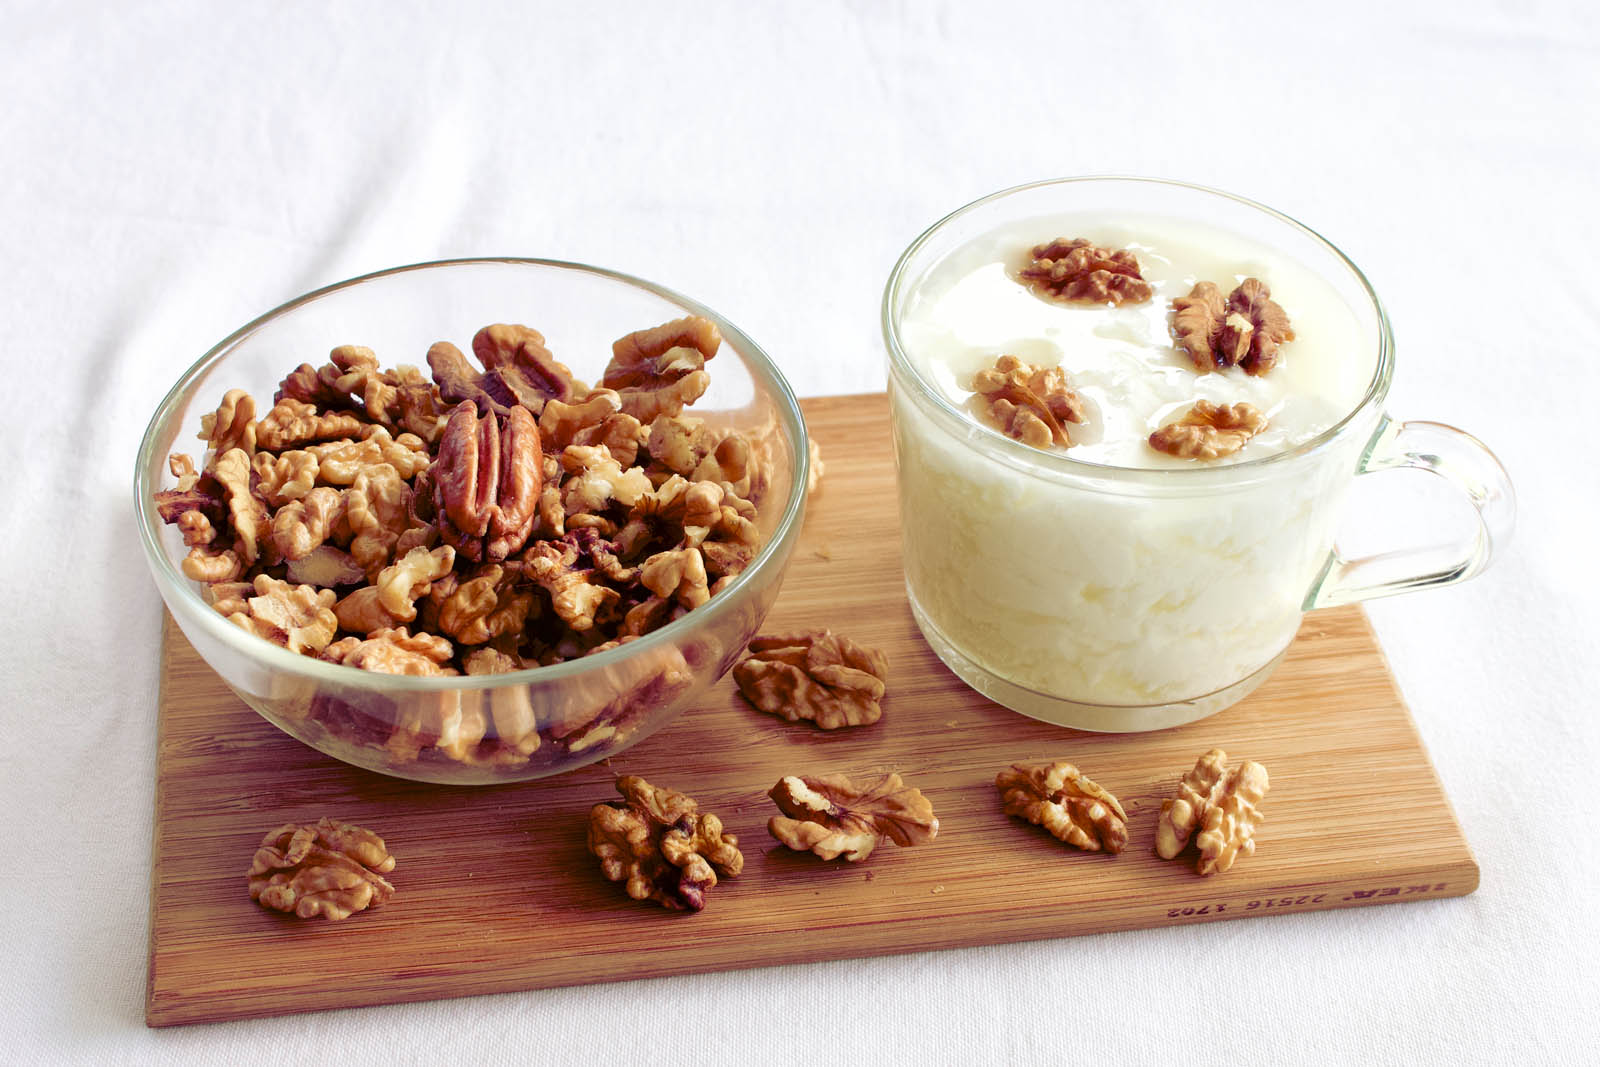 Big cup of Homemade Yogurt served with Walnuts and Pecans.